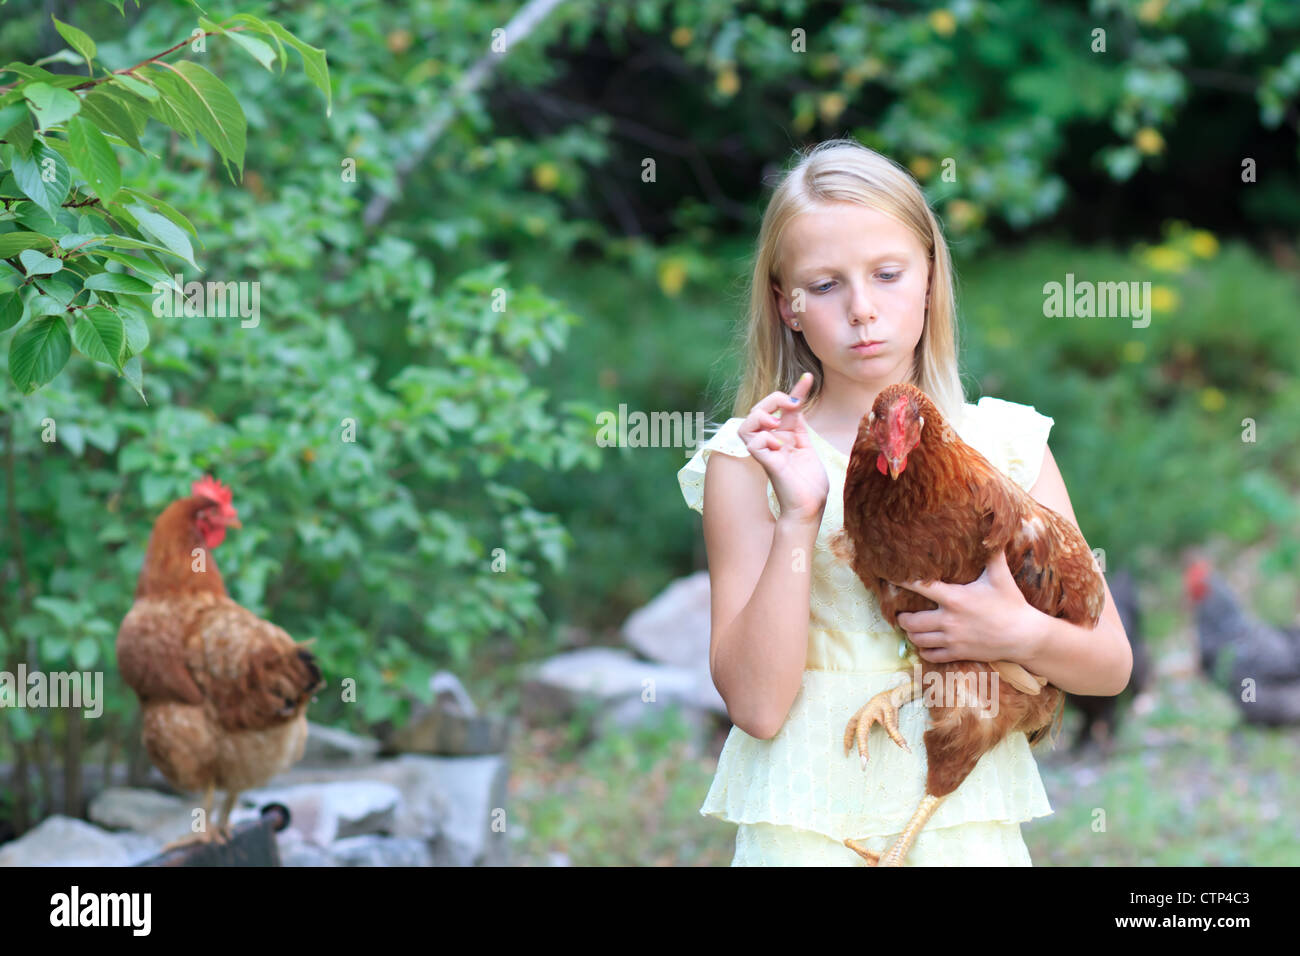 Young Blond Girl in the Garden with Chickens in a Yellow Dress - Stock Image